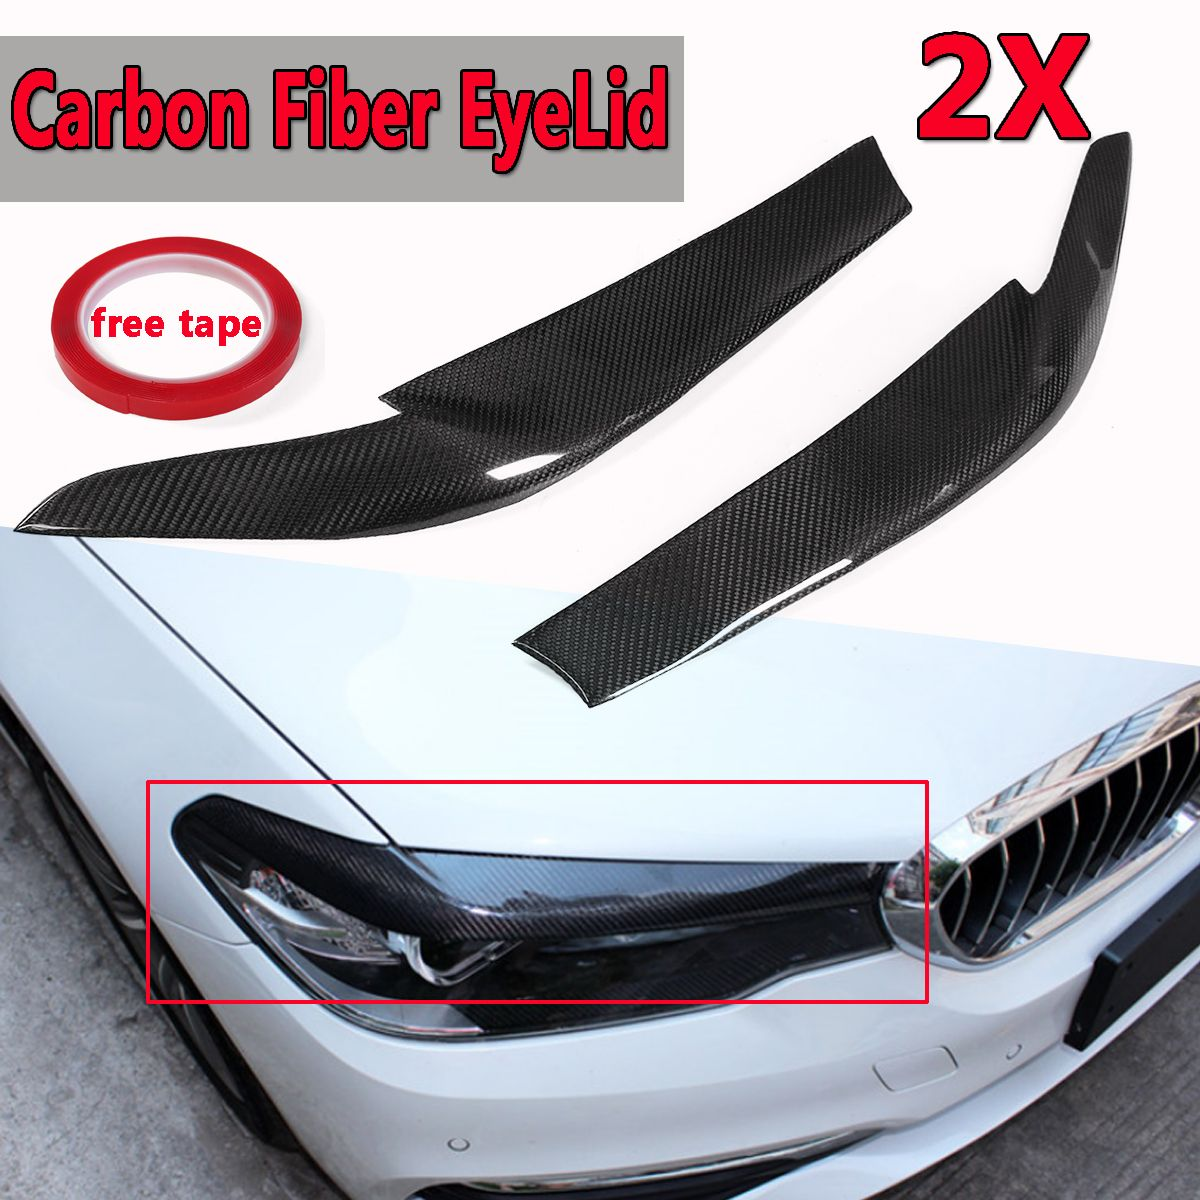 A Pair of Real Carbon Fiber EyeLids Eyebrows For BMW 2017-2018 G30 530i 540i M550i Headlight Upper EyeLid Stickers Cover Caps